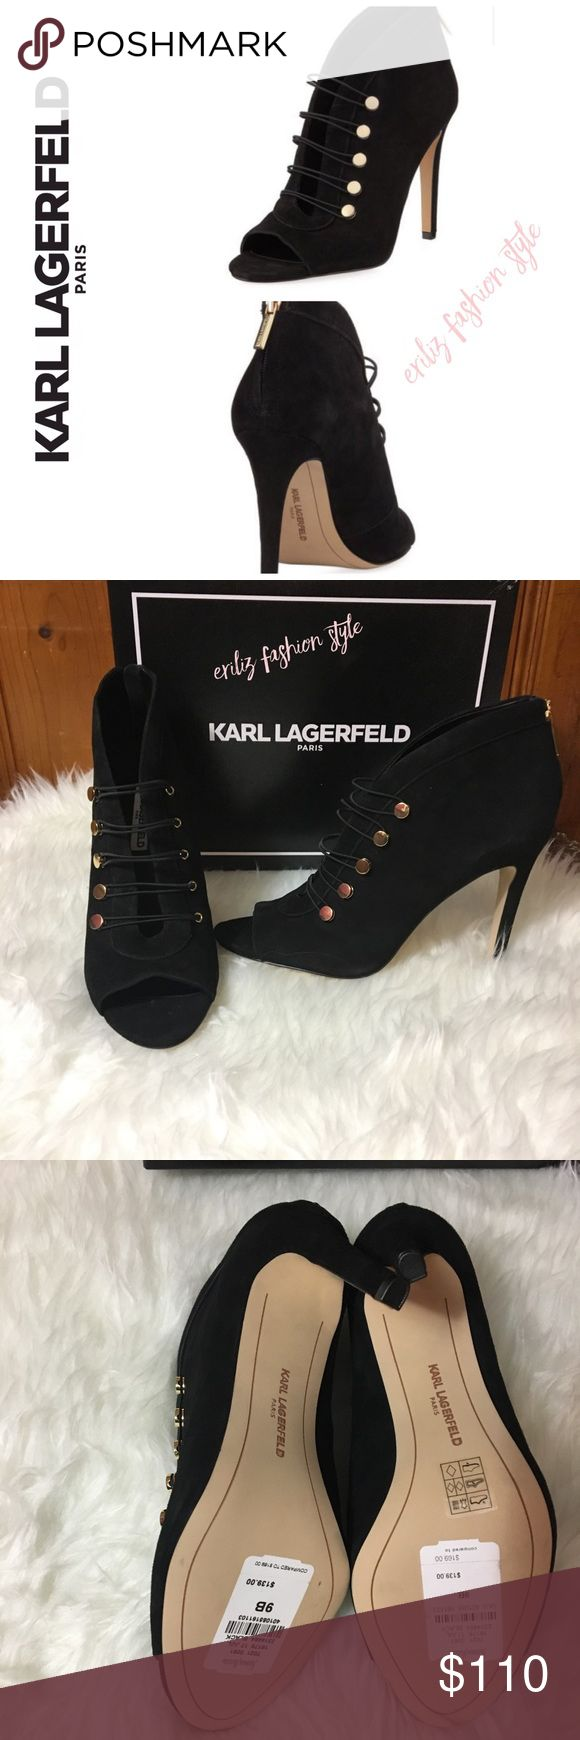 Karl Lagerfeld Paris Lori Split Open-Toe Bootie 🔸Karl Lagerfeld Suede Bootie with stretch button straps. 🔸4.3 covered stilettos heels. 🔸Open toe 🔸Padded footbed ✅ Brand Nee with Box includes  🚫No Trades 🚫No offer in comment section🚫 Karl Lagerfeld Shoes Ankle Boots & Booties